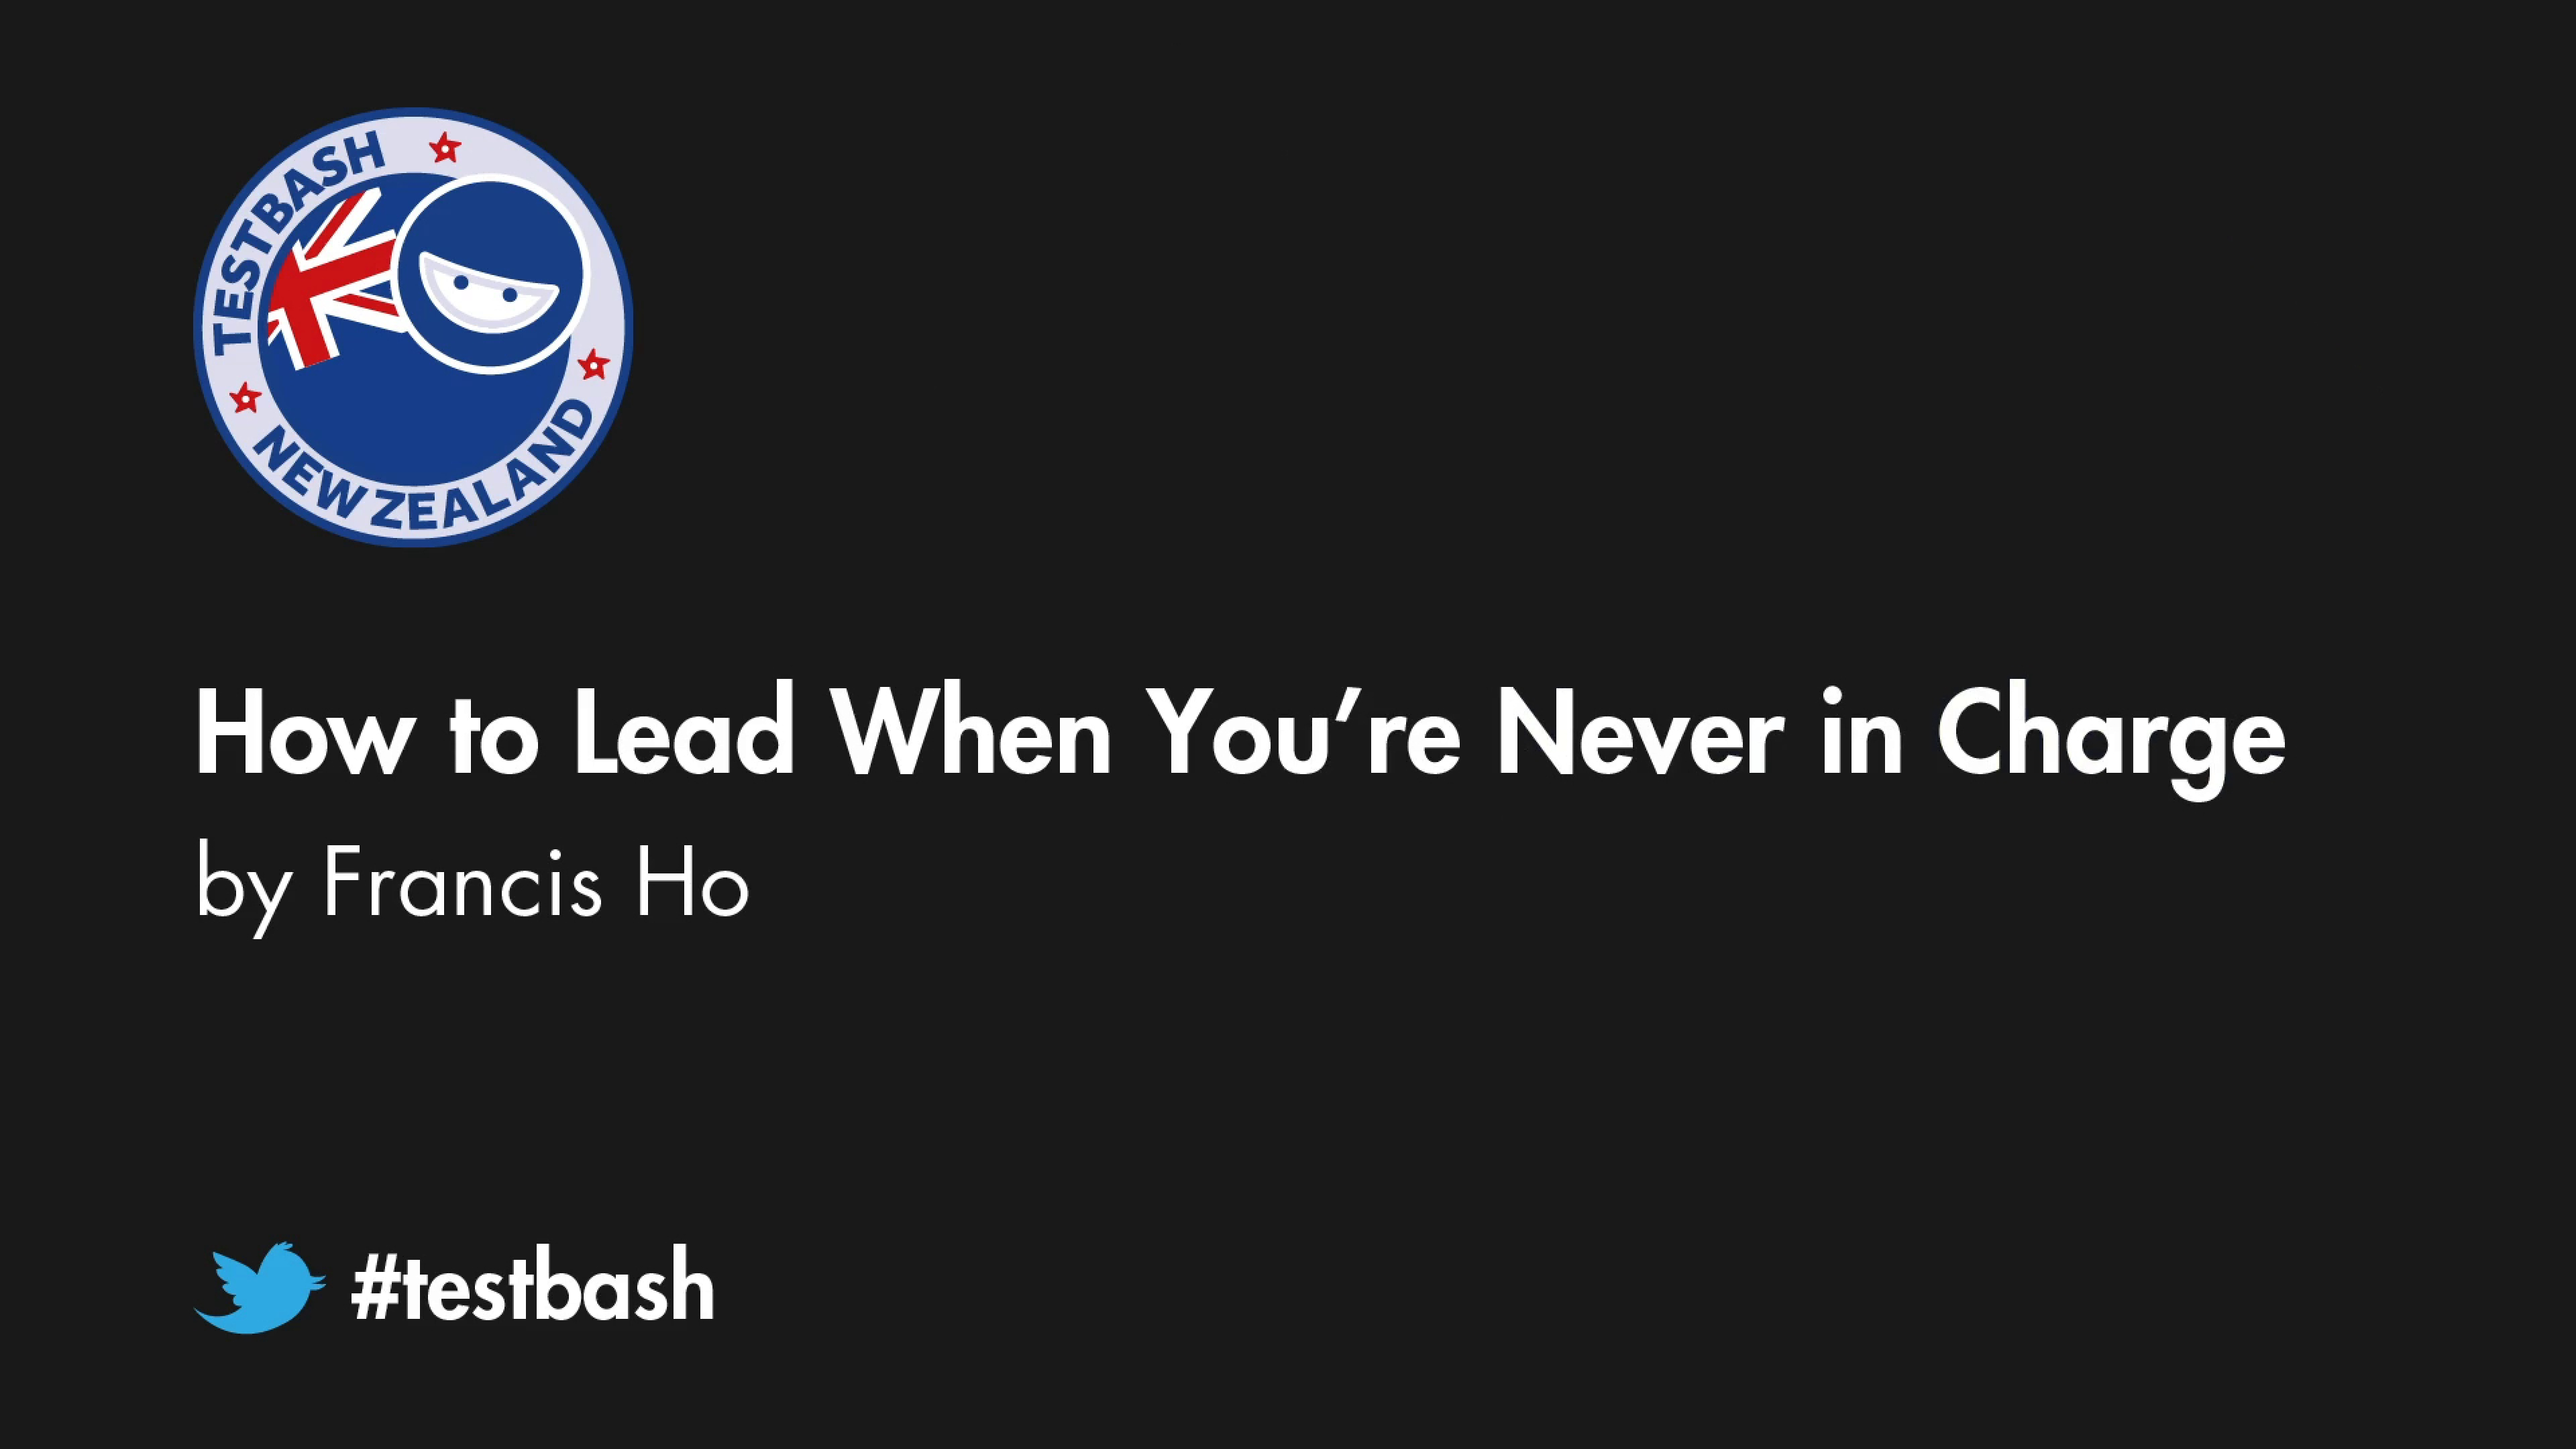 How to Lead When You're Never in Charge - Francis Ho